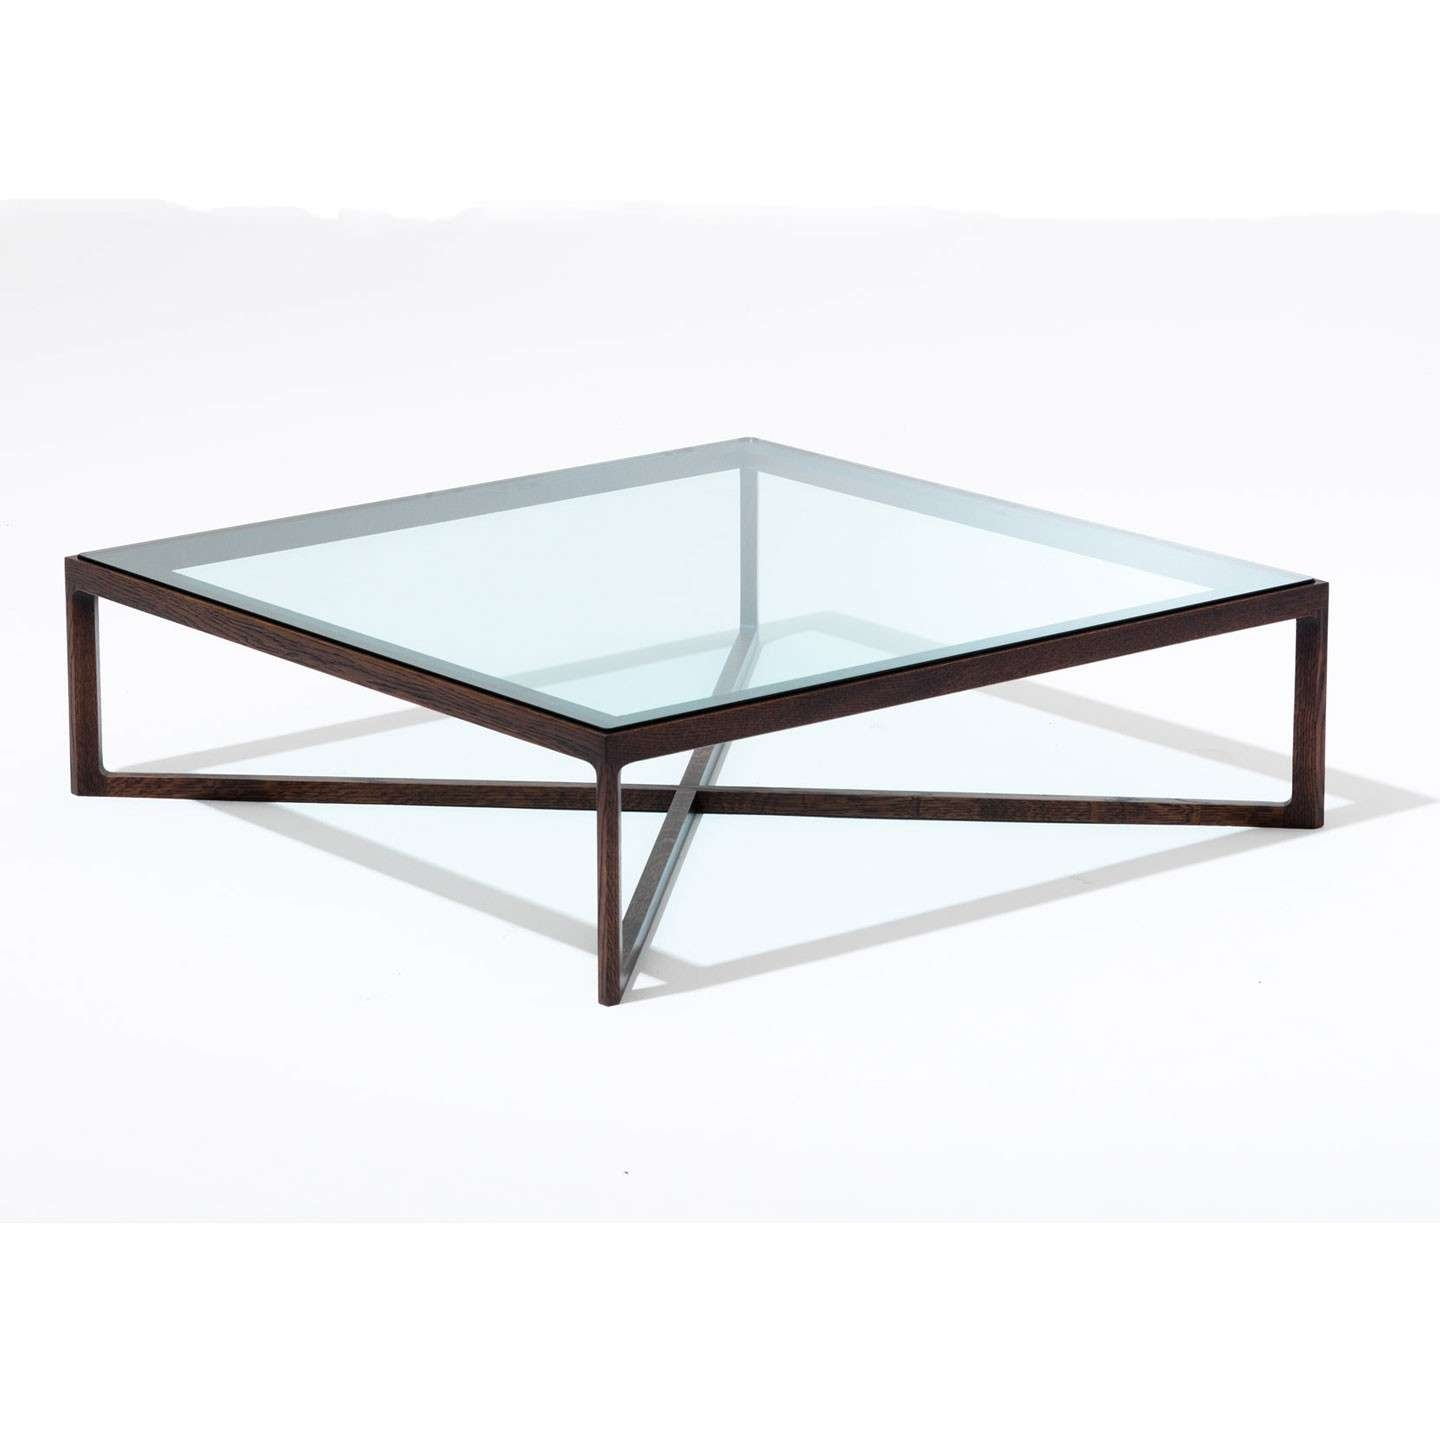 Astonishing Glass Top Coffee Tables Idea – Crate And Barrel Within Most Current Square Dark Wood Coffee Tables (Gallery 19 of 20)